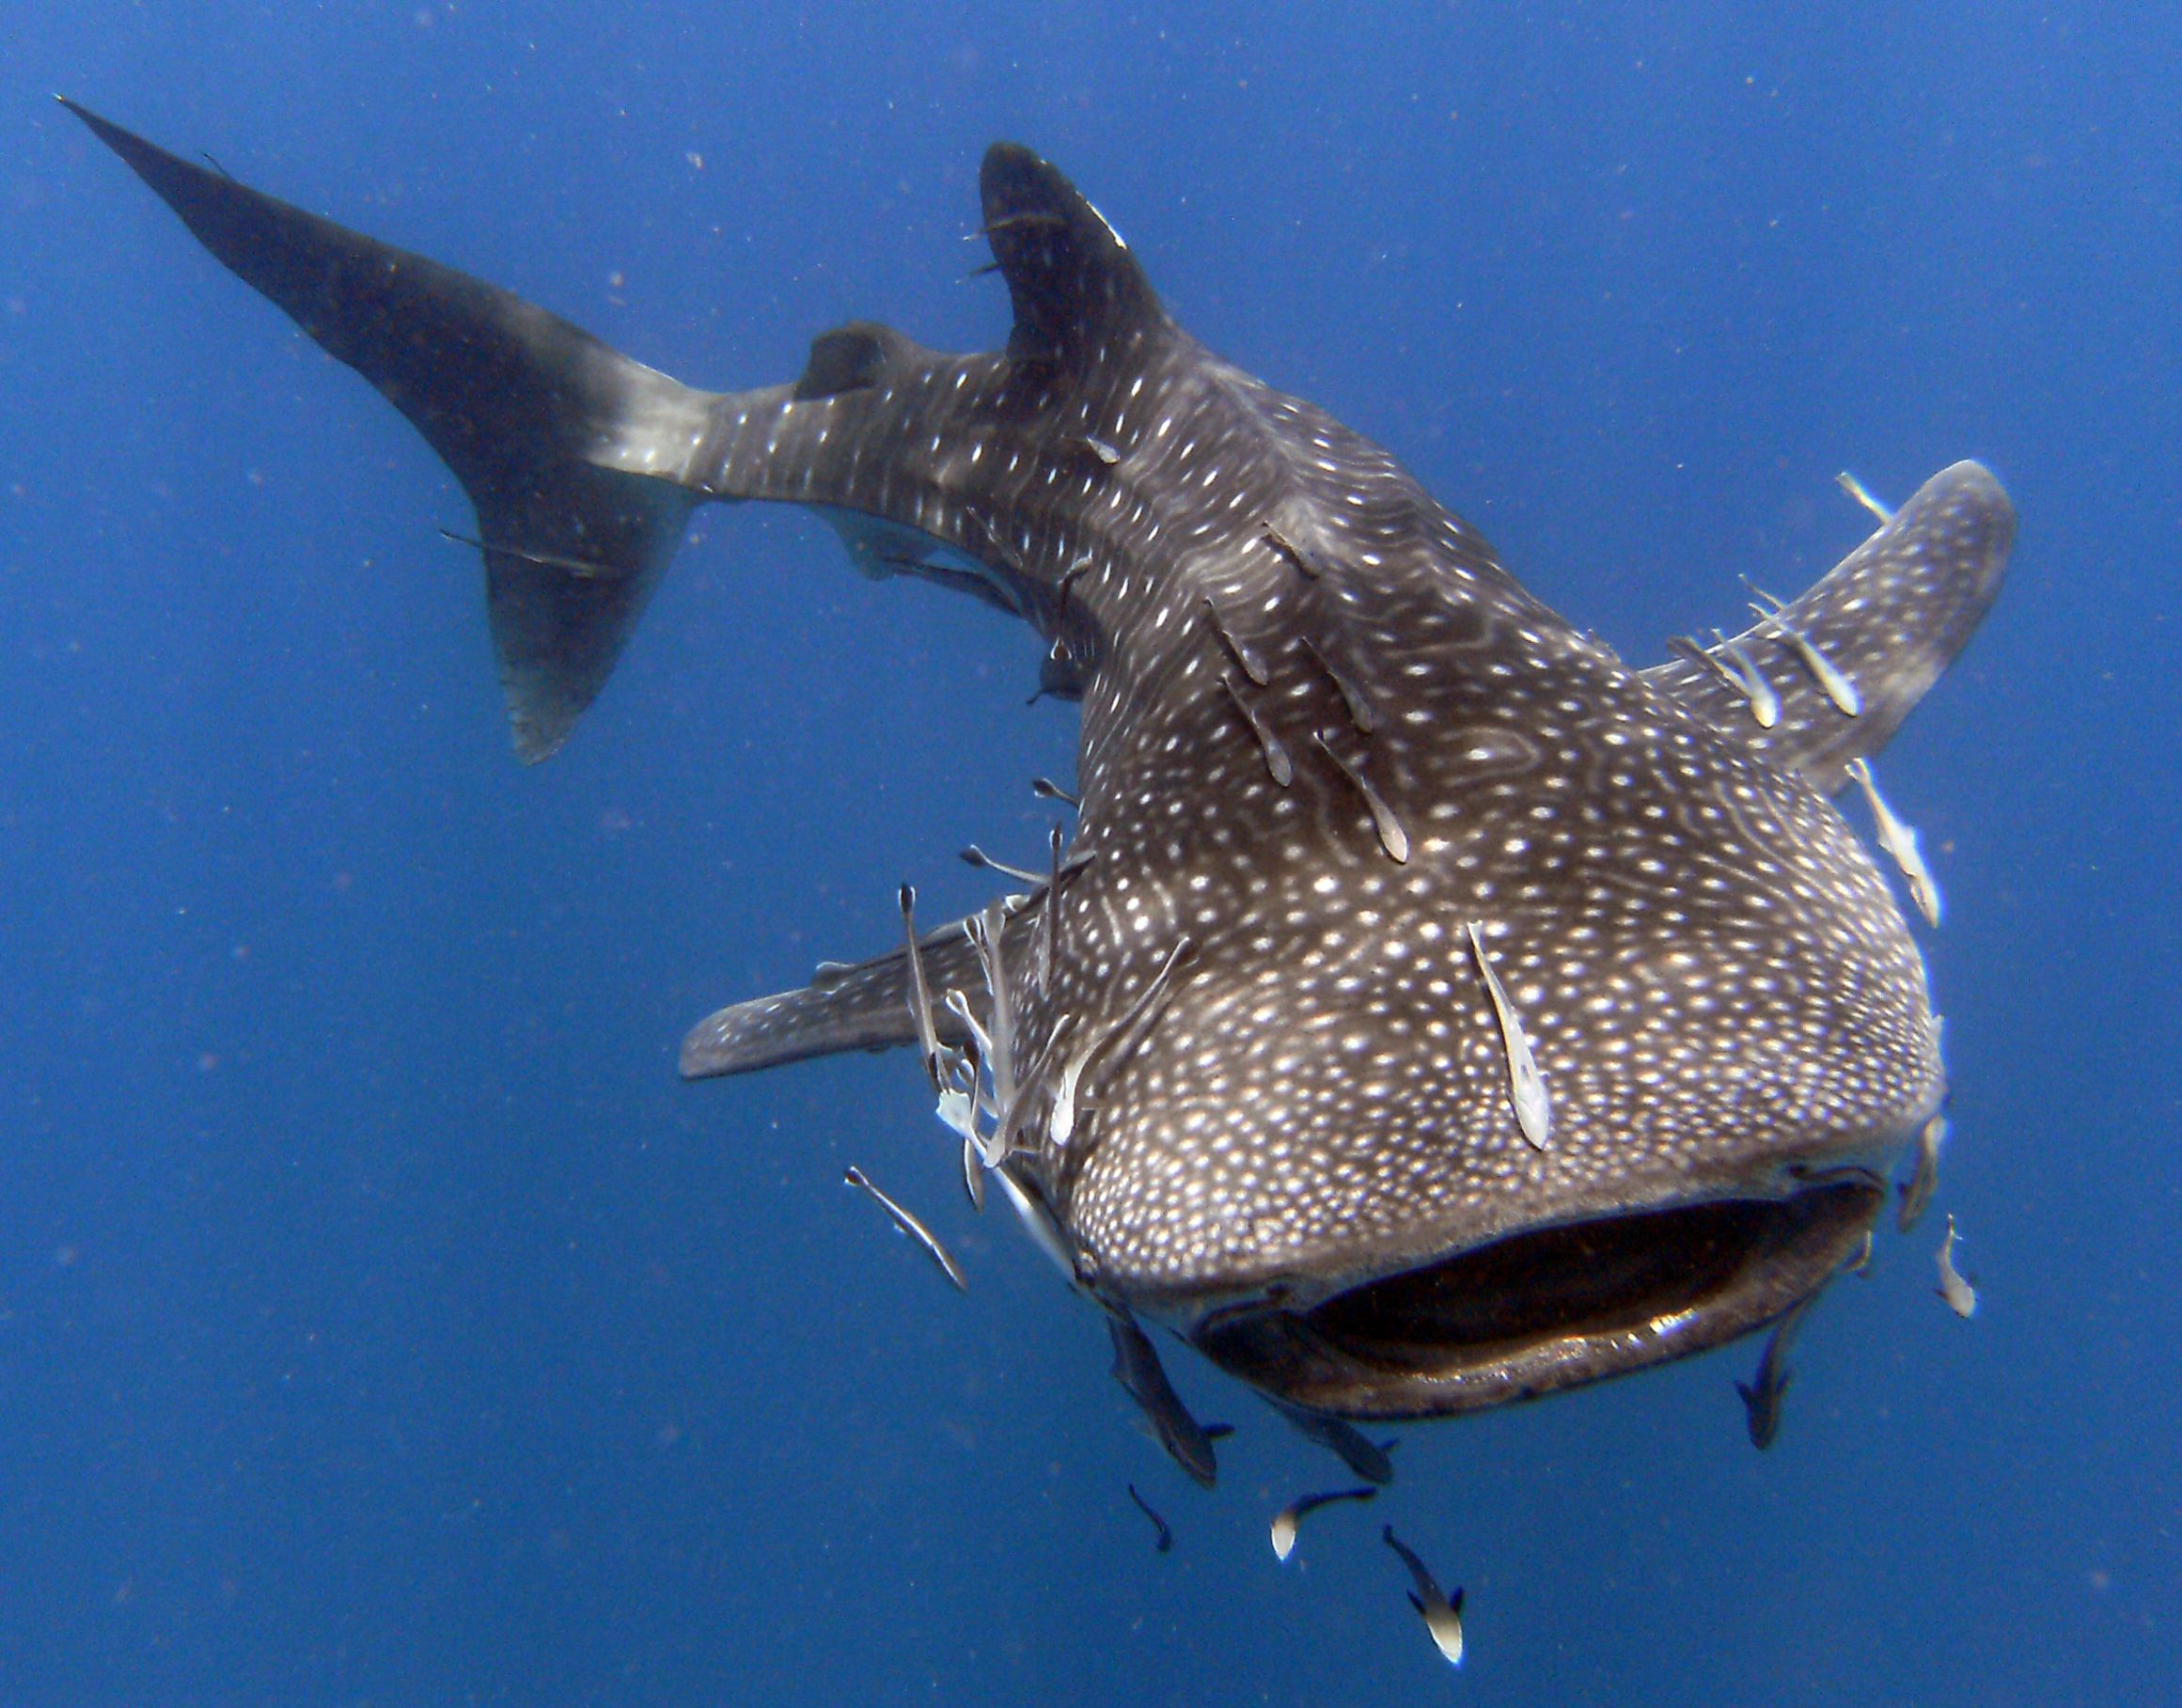 The massive yet gentle Whale Shark is at least the length of a bus and weighs around 19 tonnes.